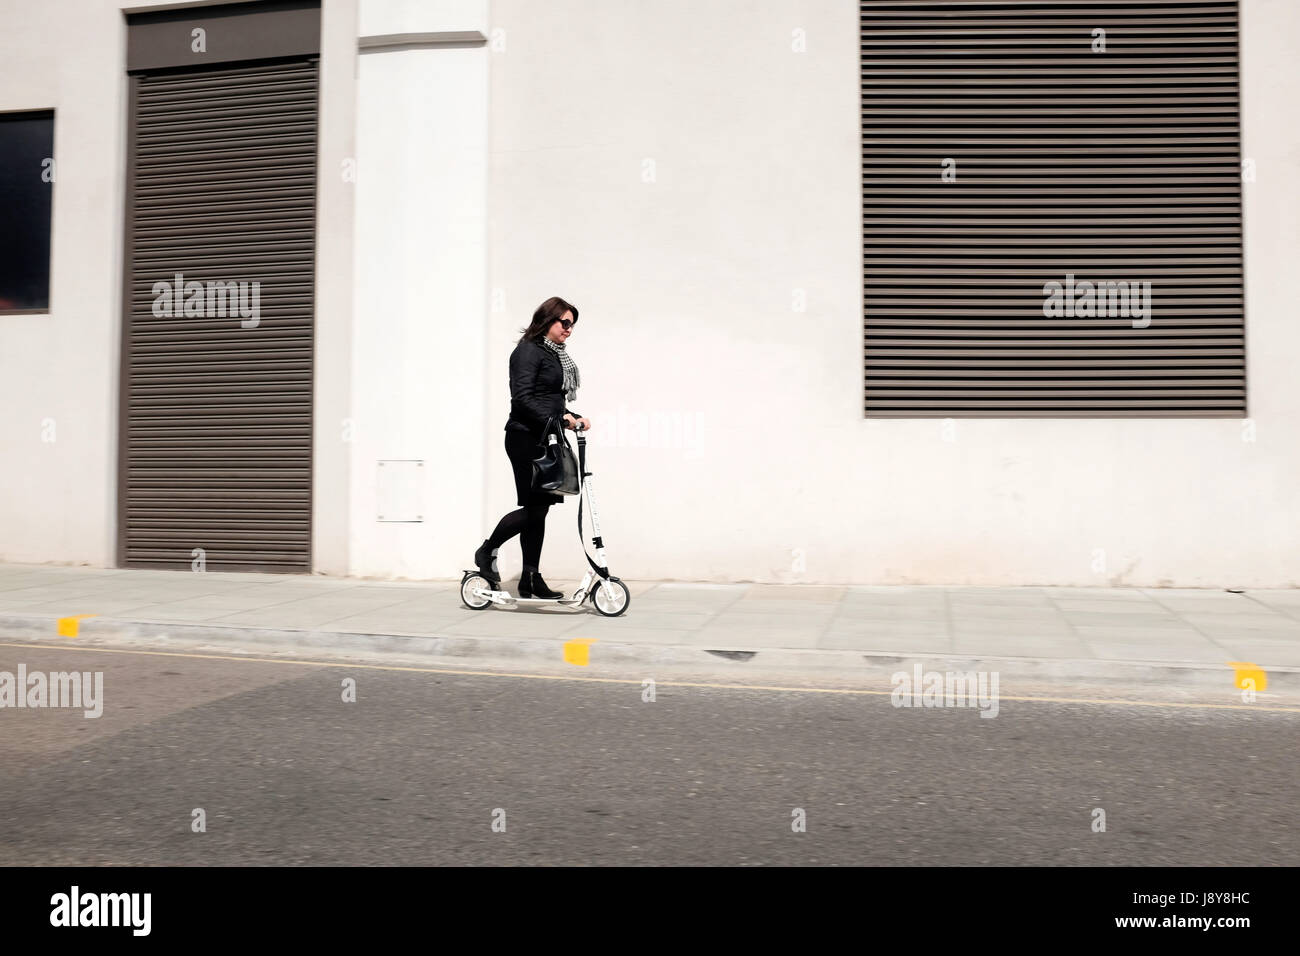 Woman on pedestrian scooter, London, England, UK. - Stock Image